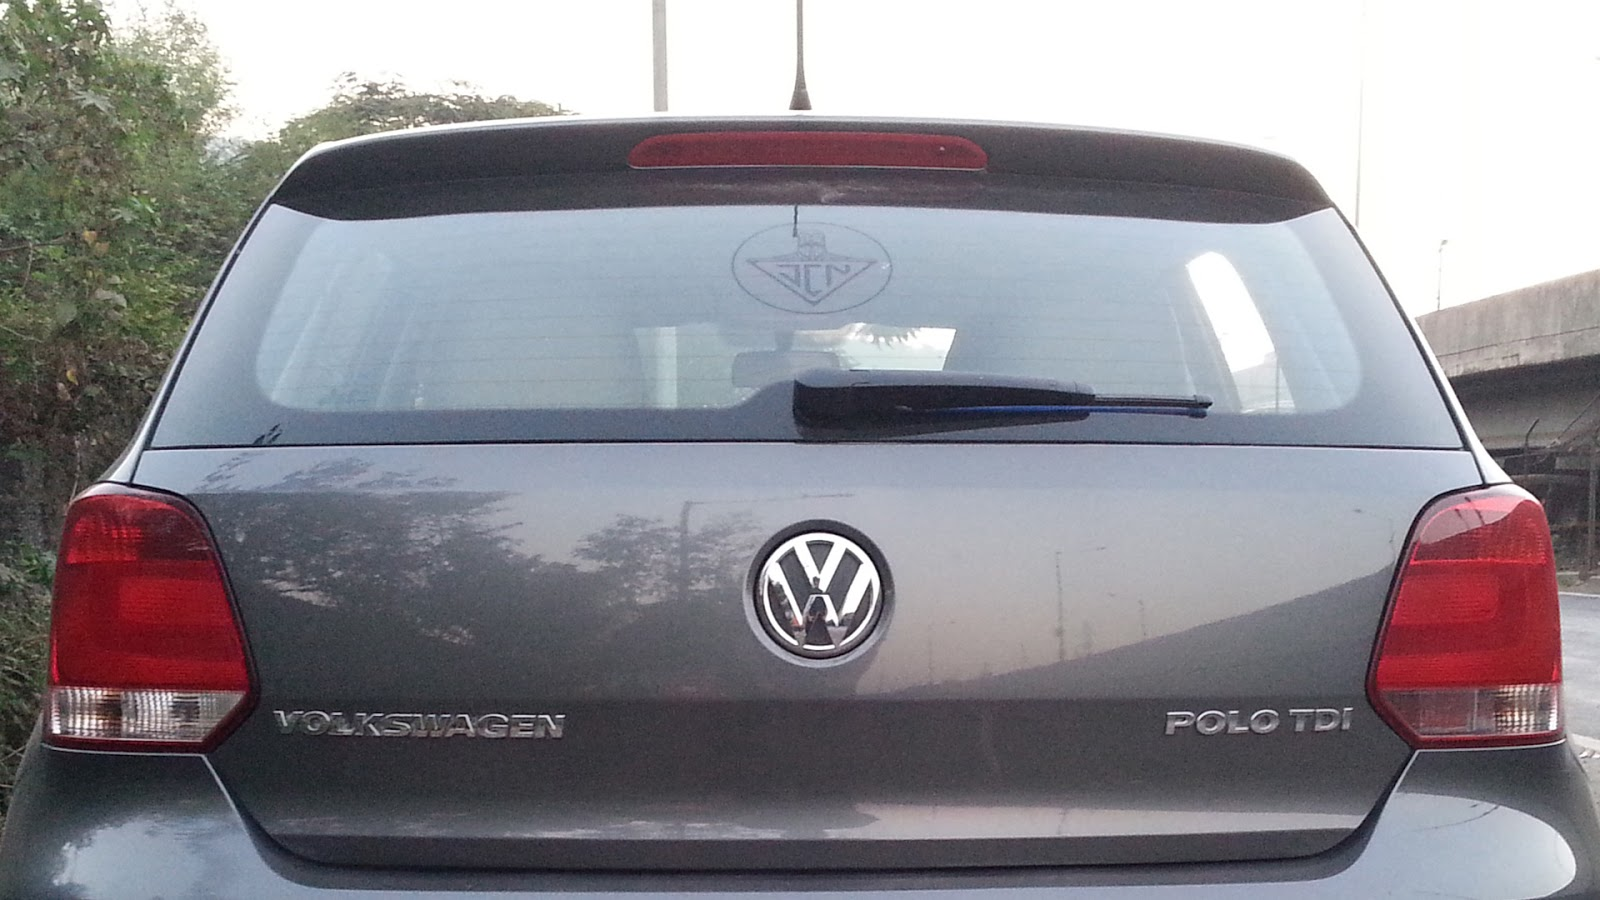 Lt Blak's logo on his Volkswagen Polo